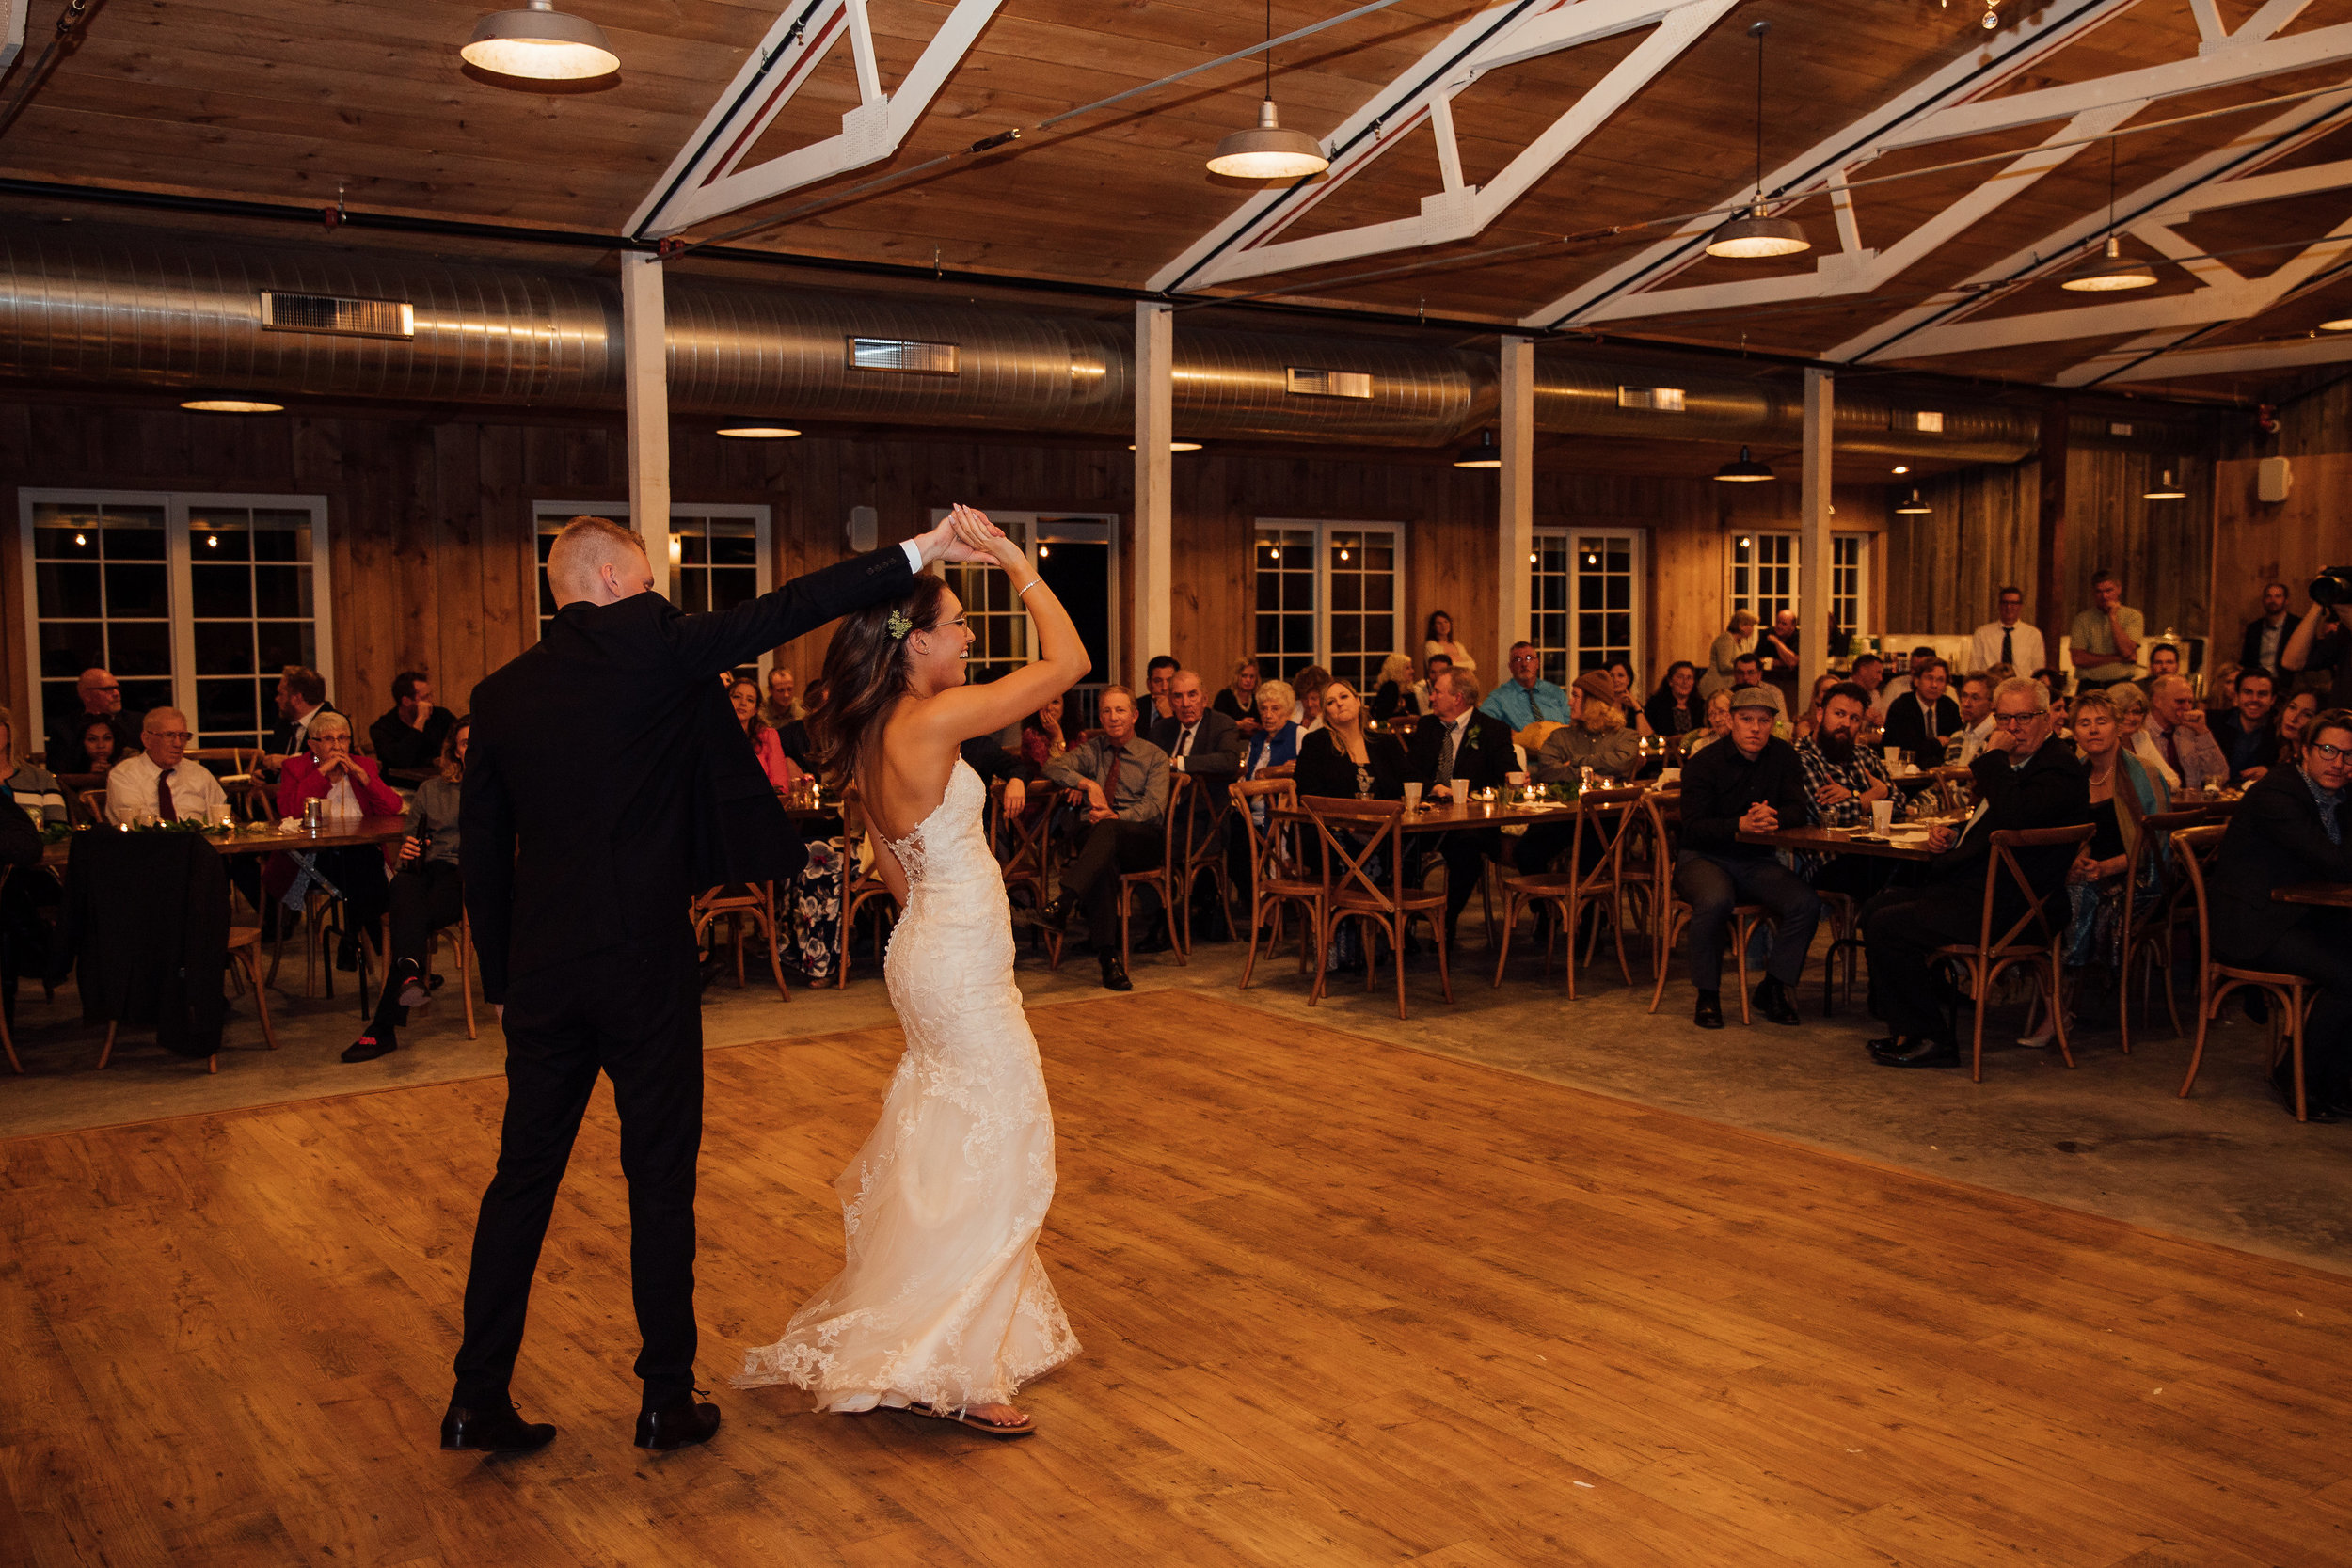 Bride and groom share their first dance at their wedding reception in Minnesota